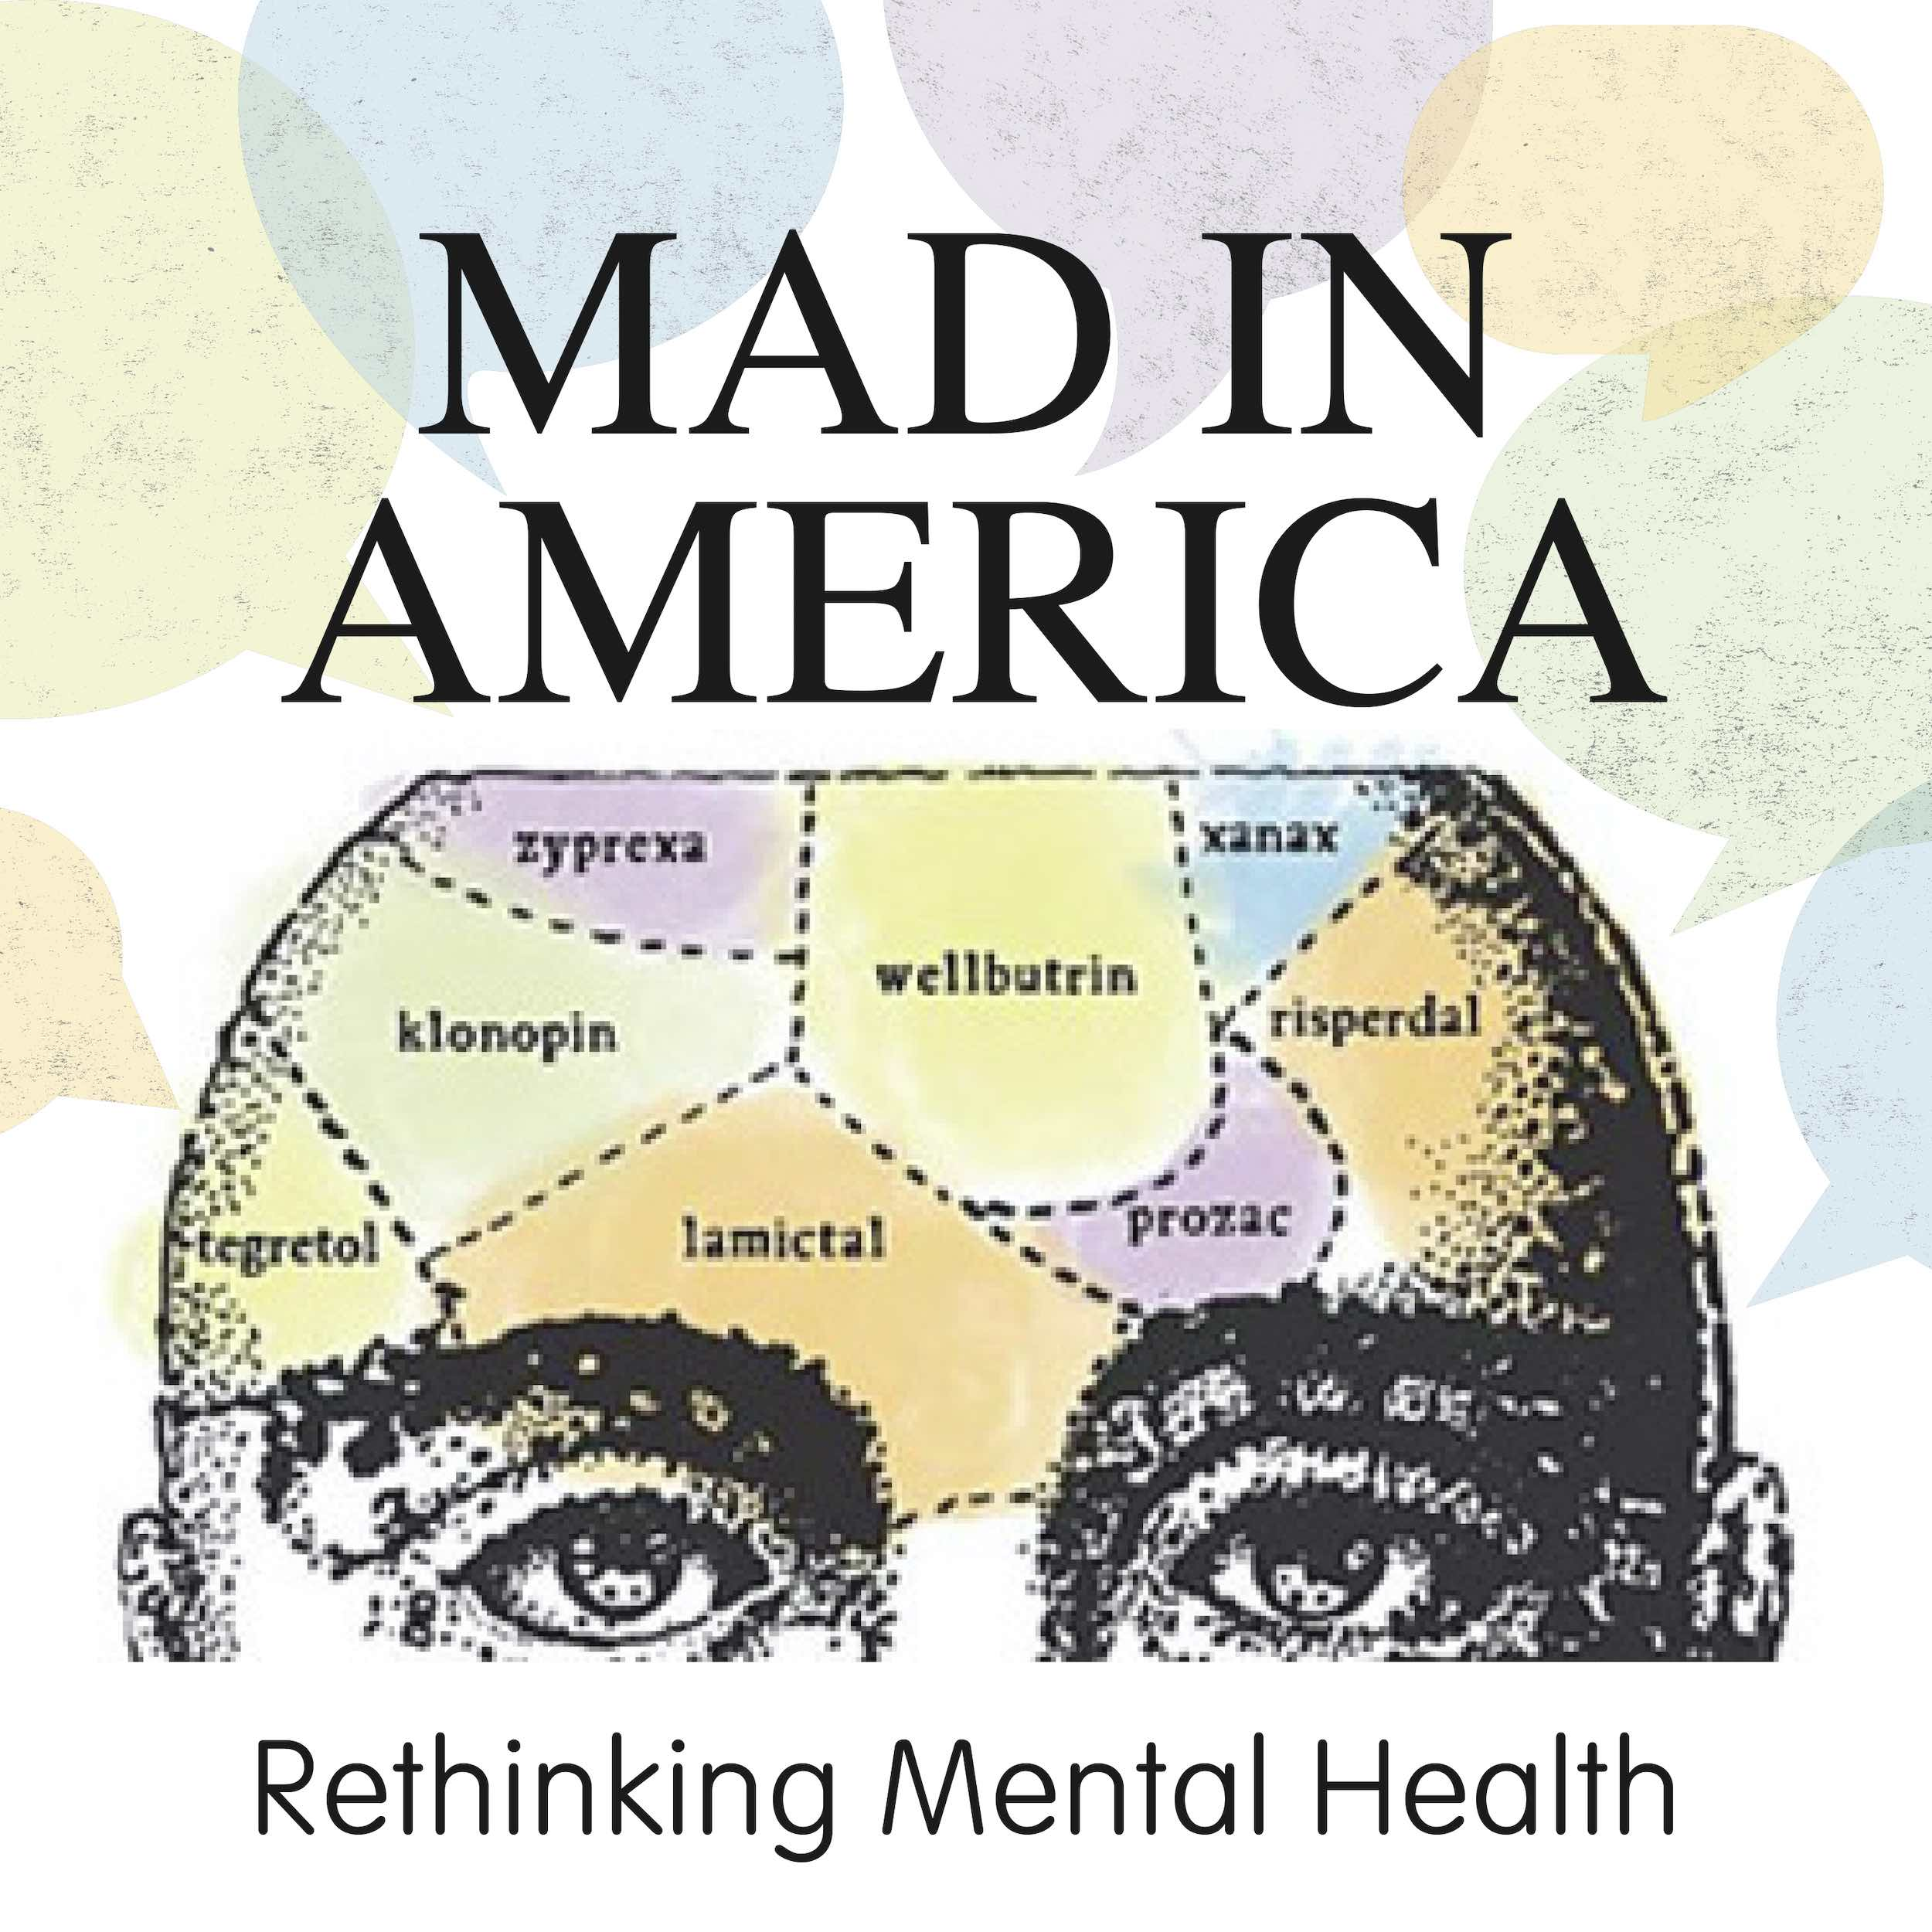 Mad in America: Rethinking Mental Health - Sam Himelstein - The Impact of COVID-19 and Social Distancing on Adolescents